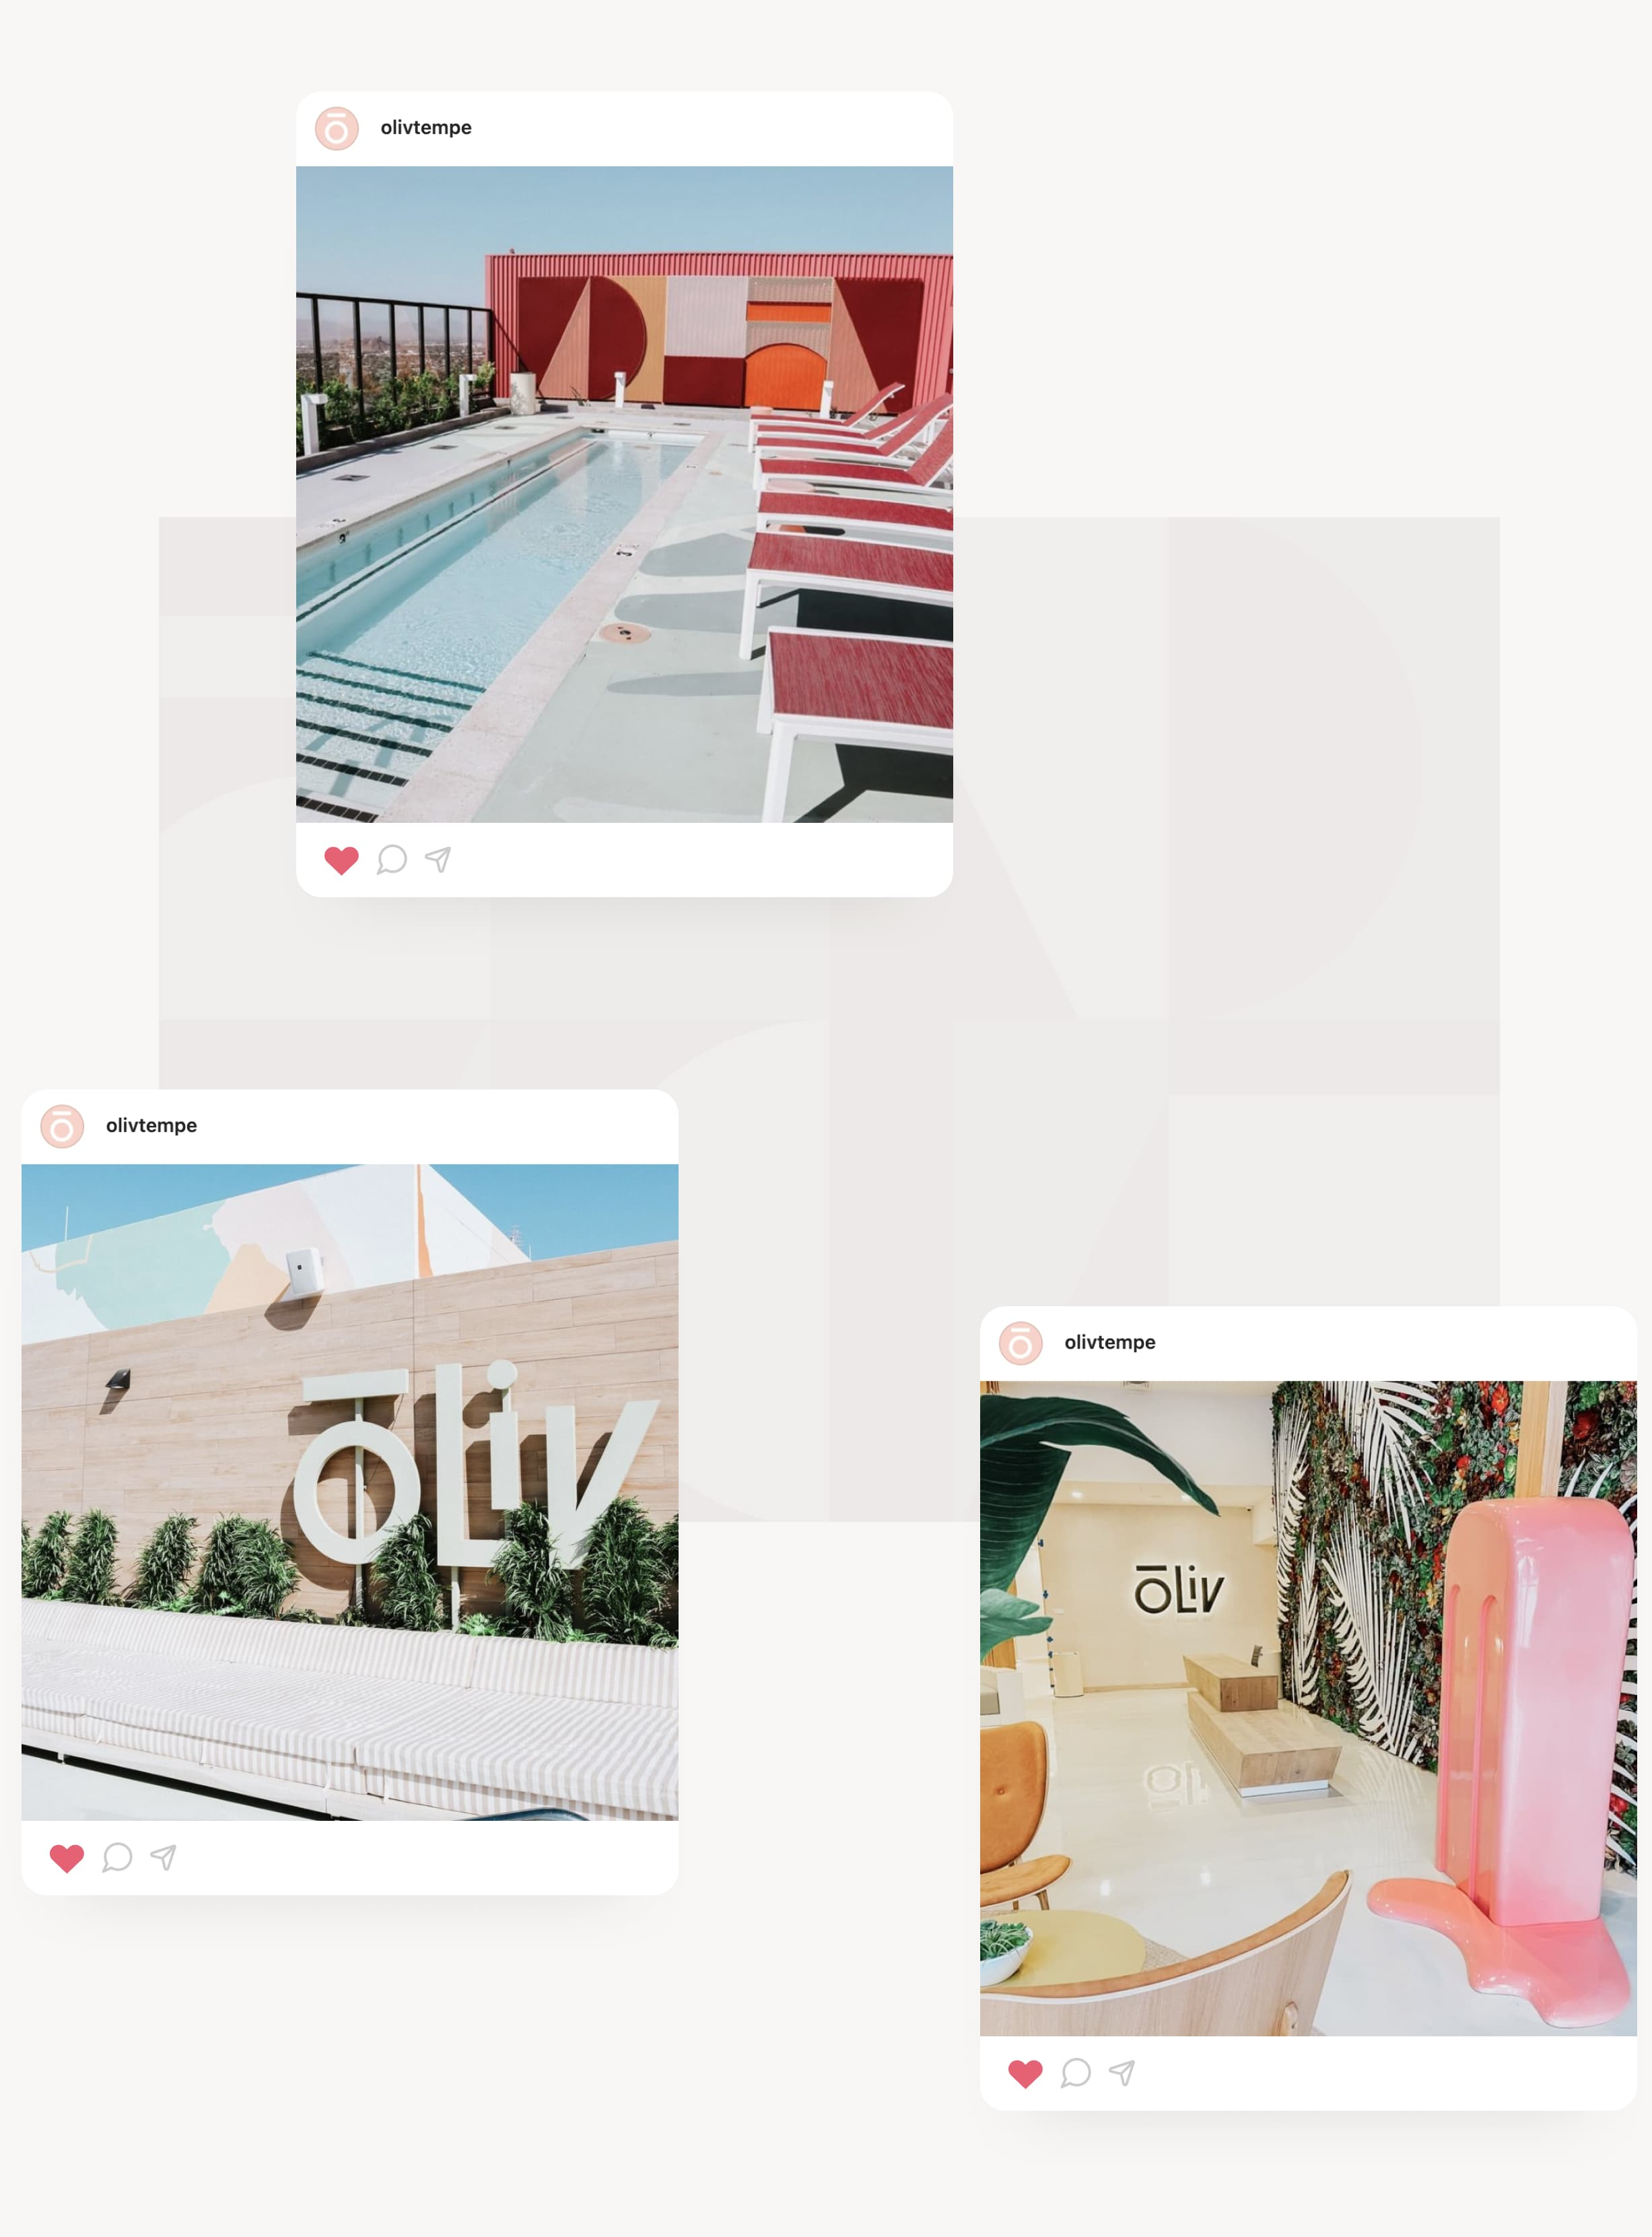 A series of three images showing Instagram stories designed in the new ōLiv brand language.